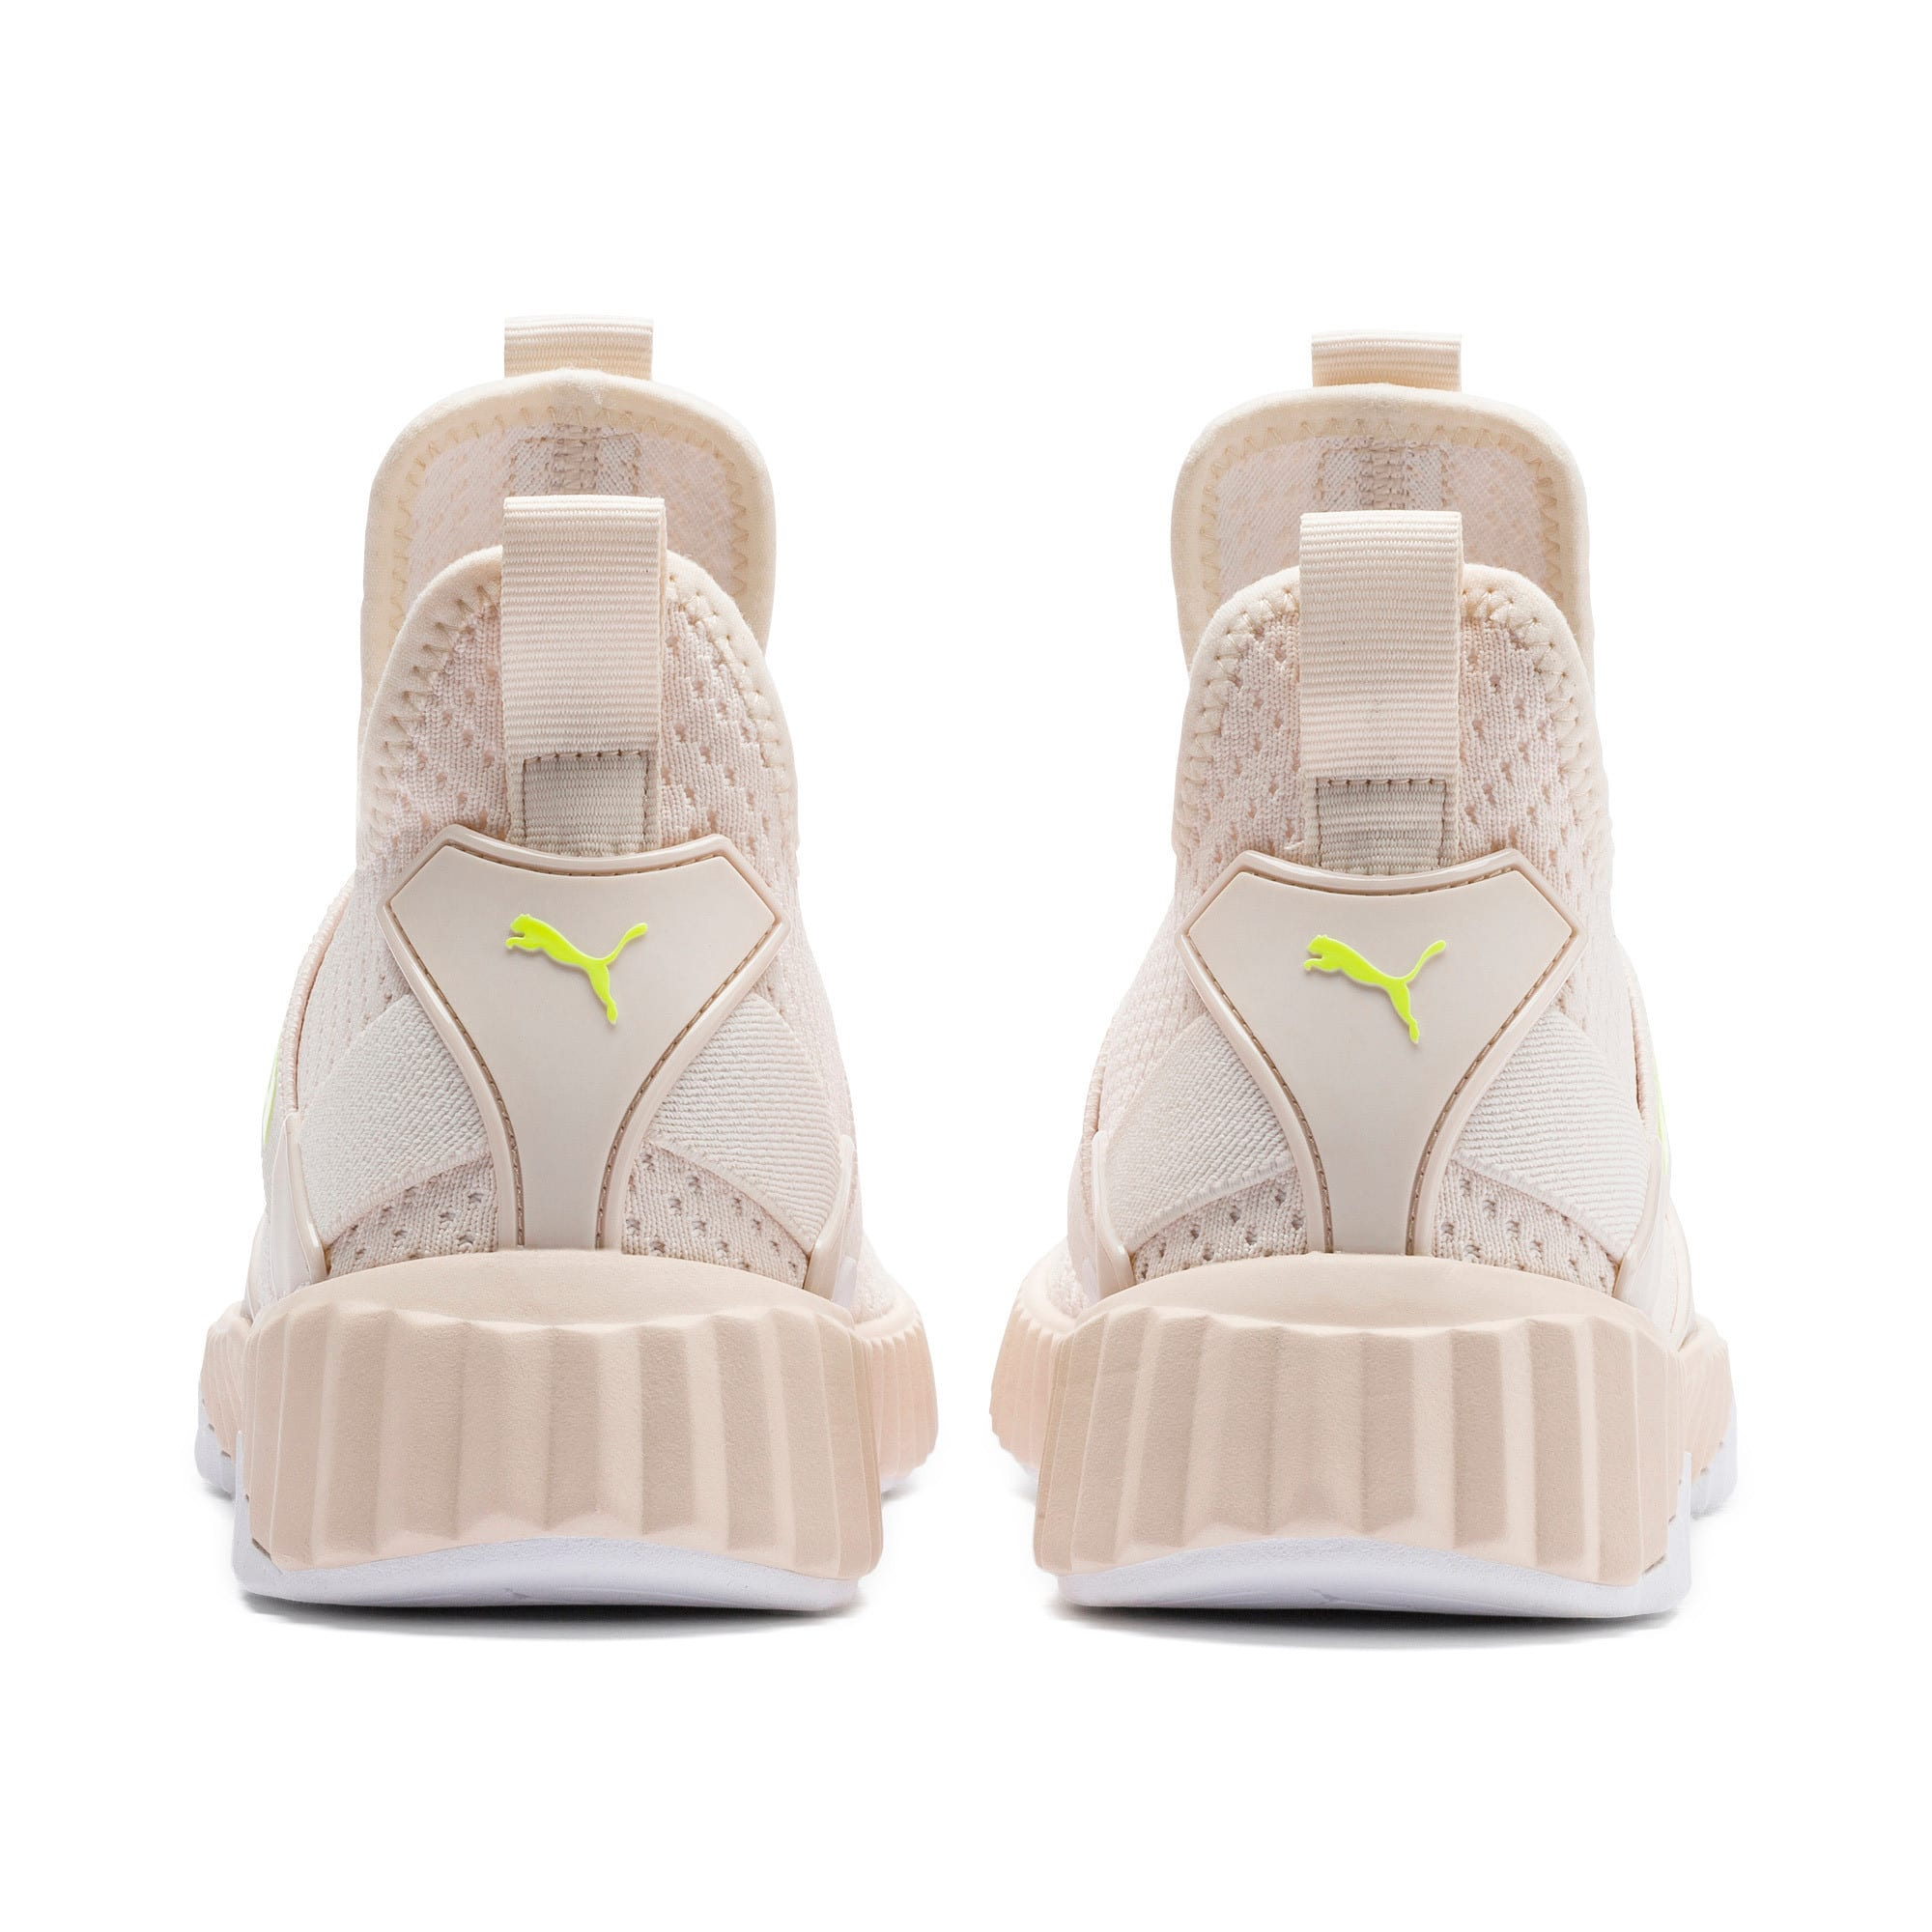 Thumbnail 4 of Defy Mid Core Women's Trainers, Pastel Parchment-Puma White, medium-IND